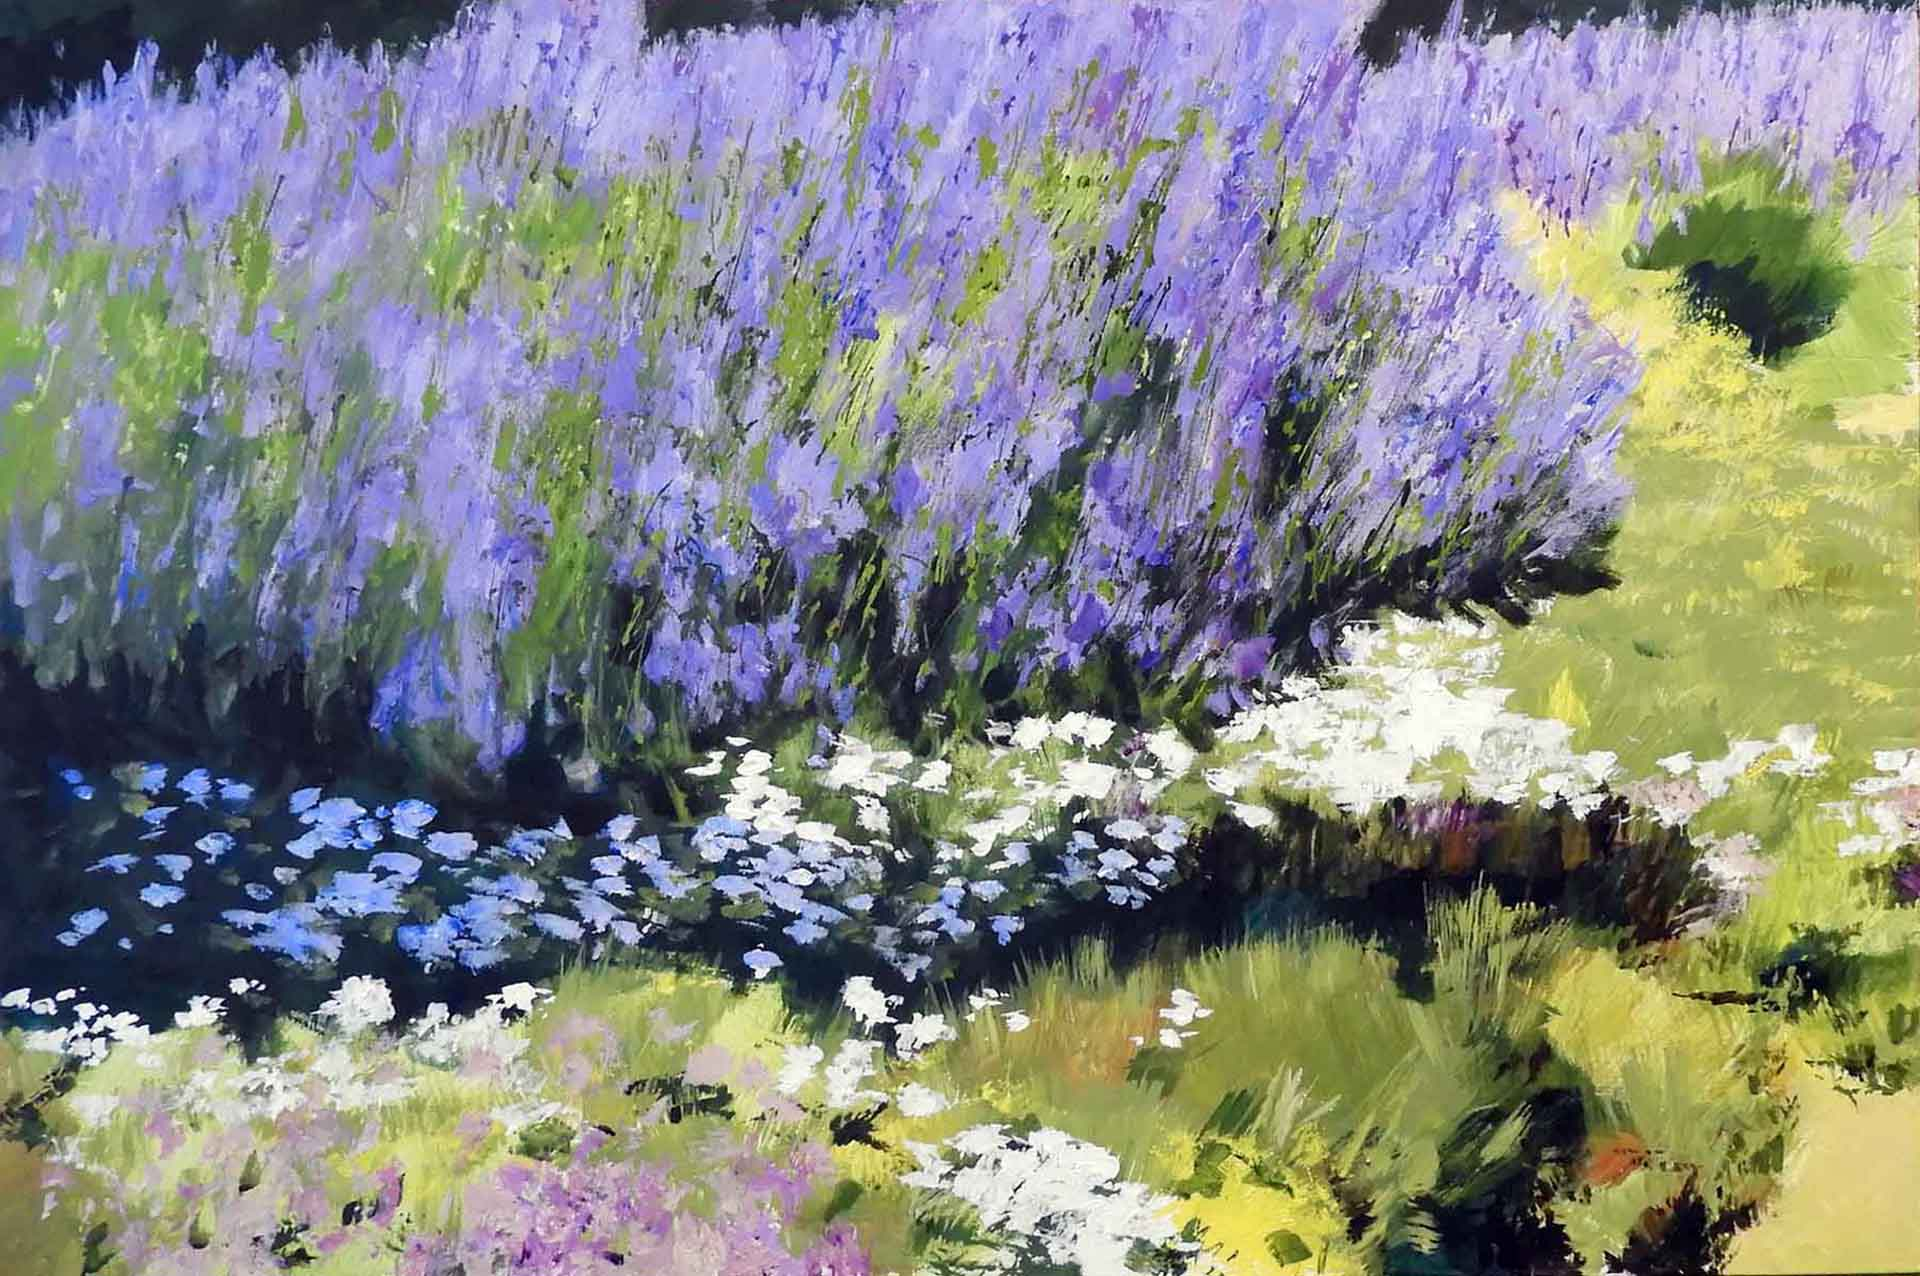 Lavender Summer, copyright © Anne Price Yates